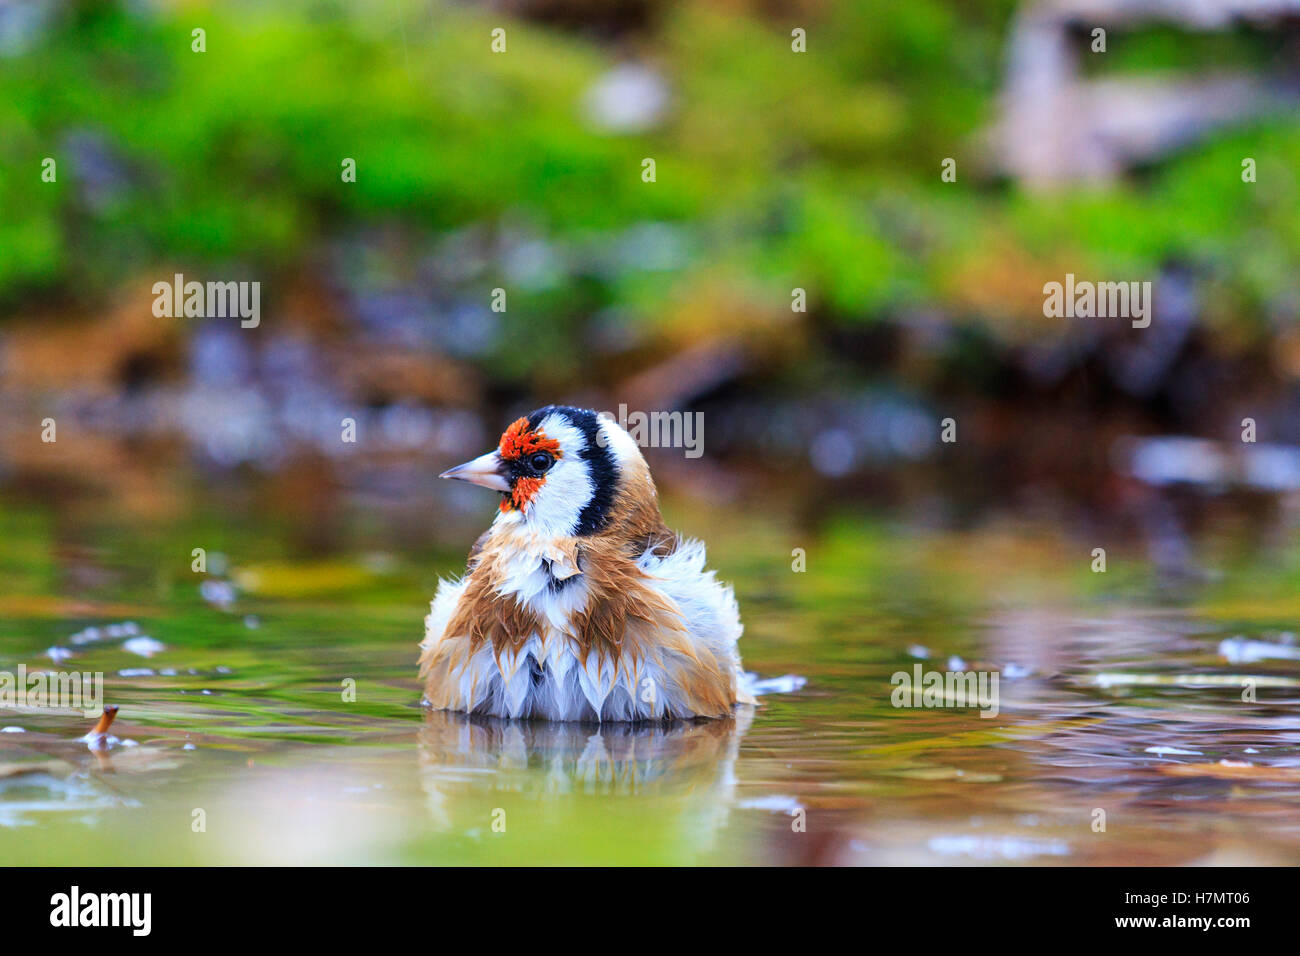 bird with a red head on watering,autumn colored bird, unique moment, - Stock Image